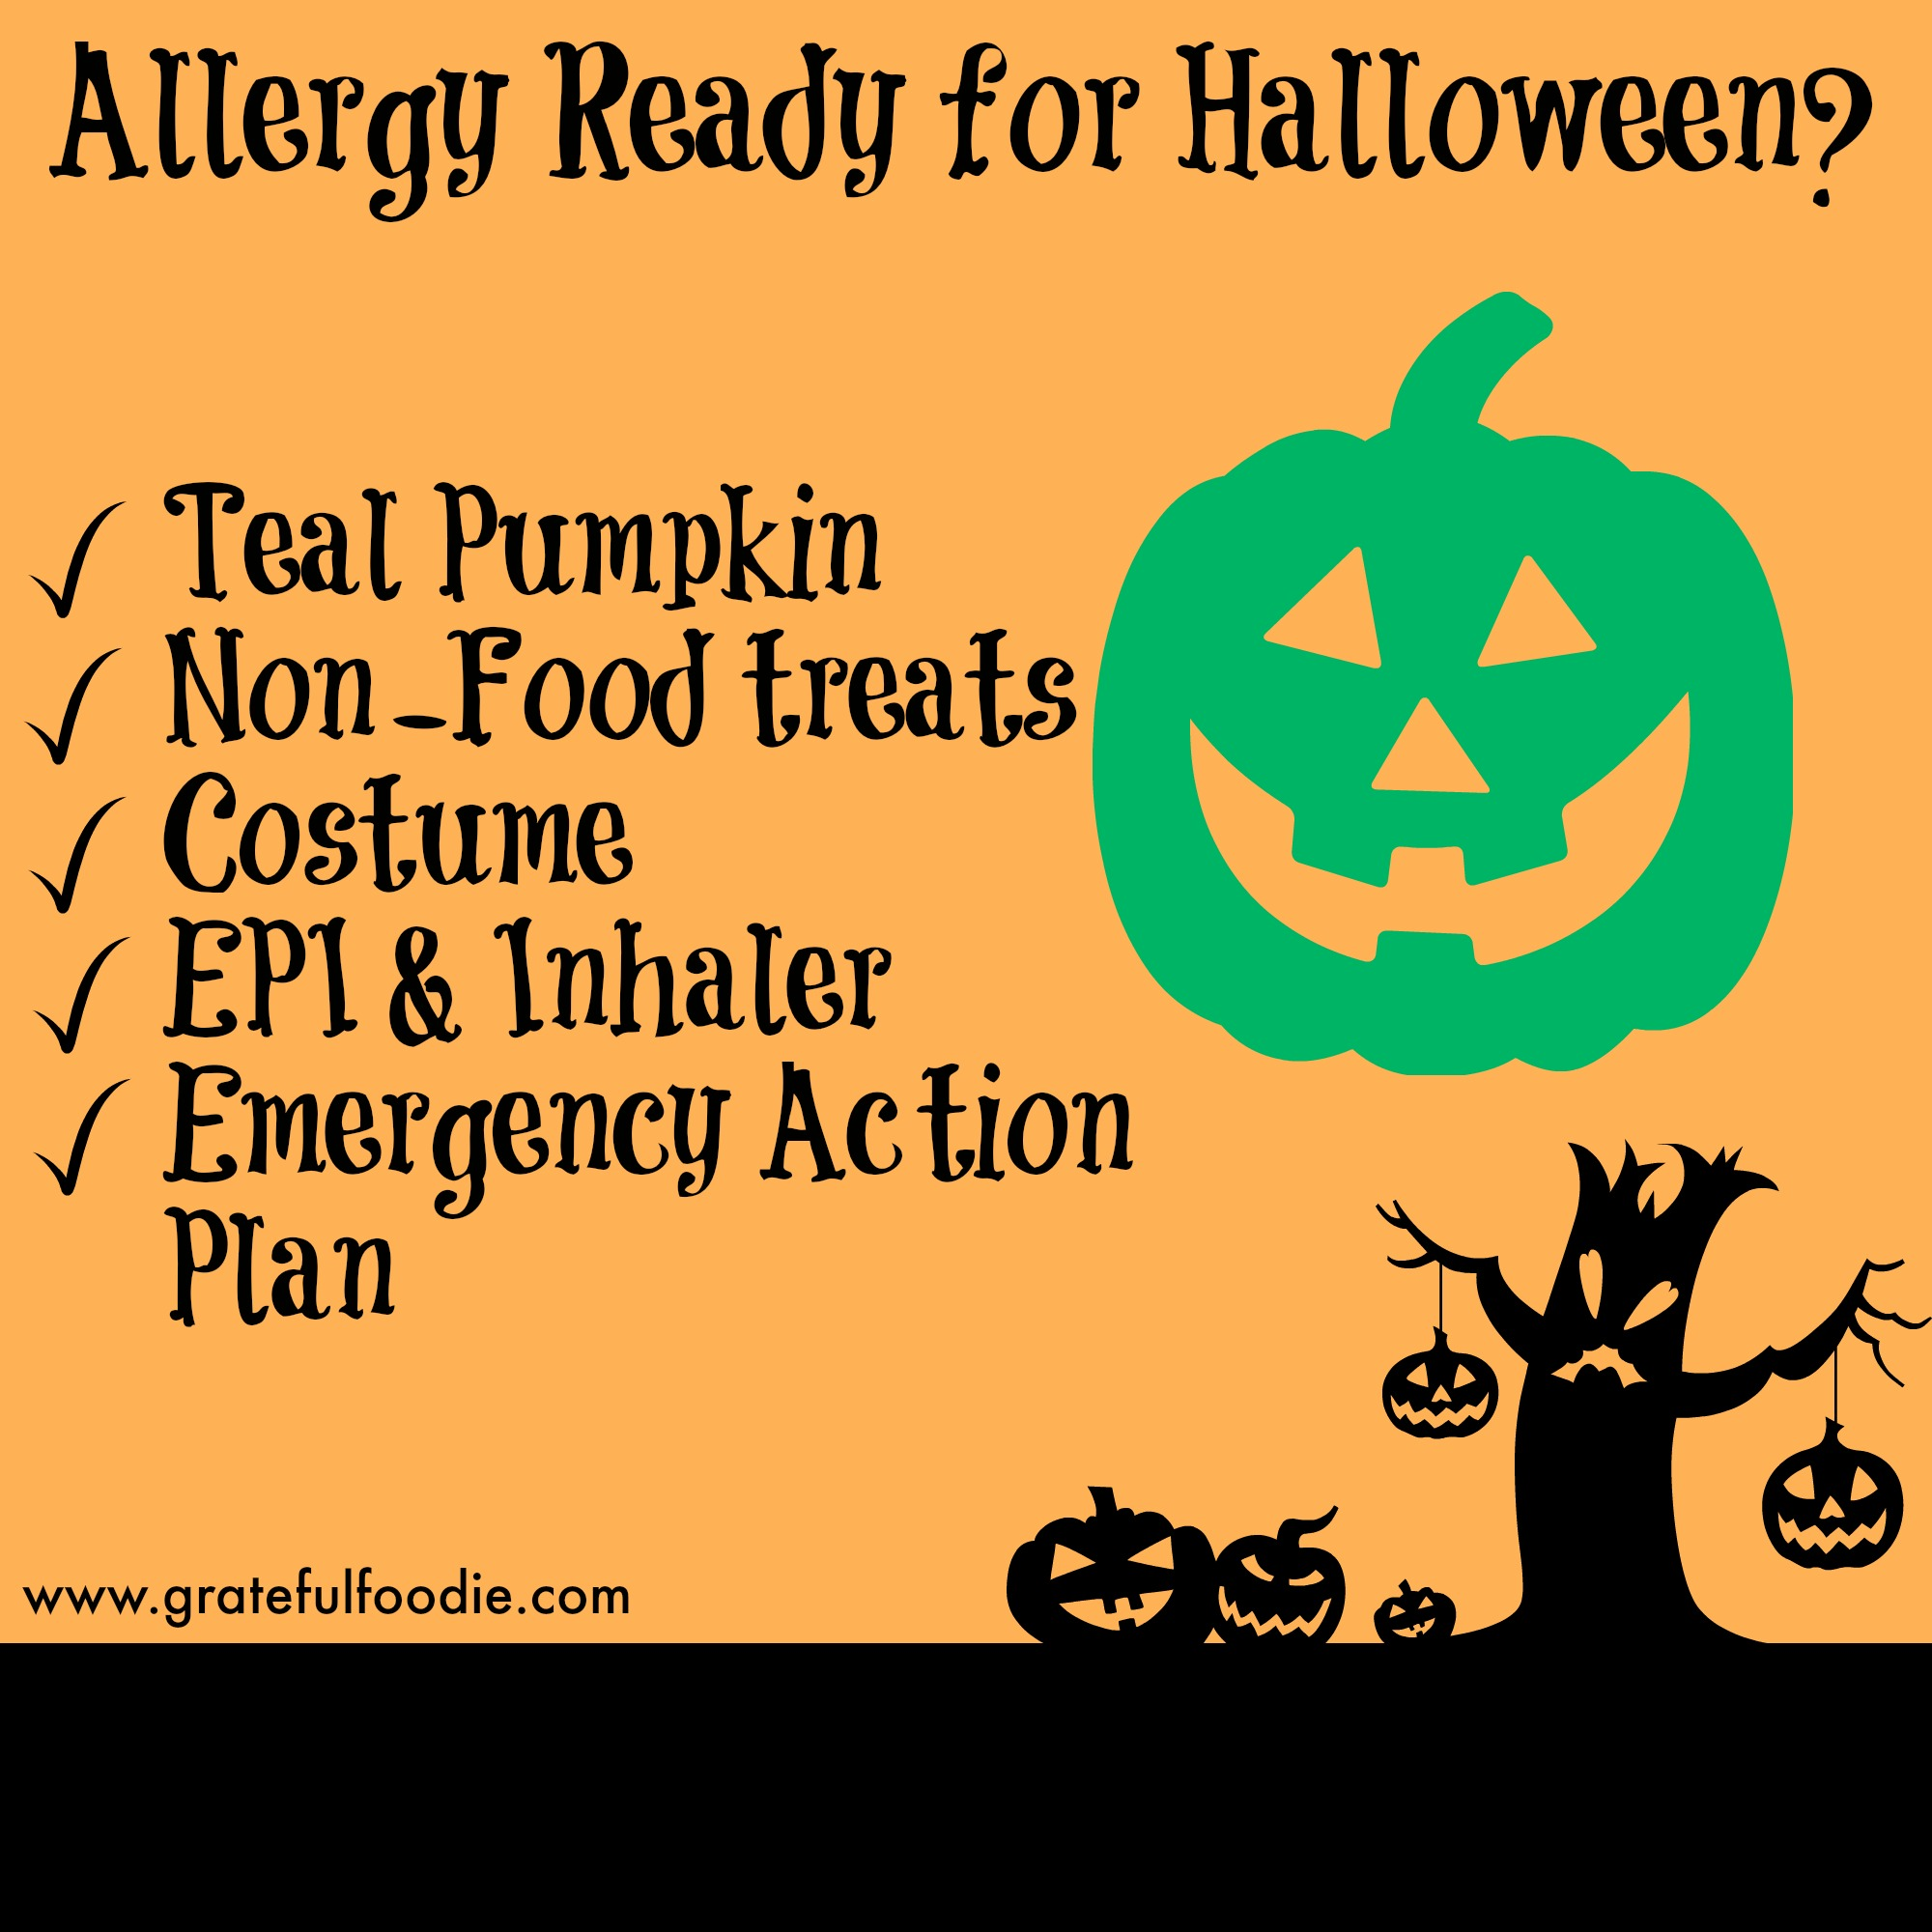 Allergy Ready for Halloween